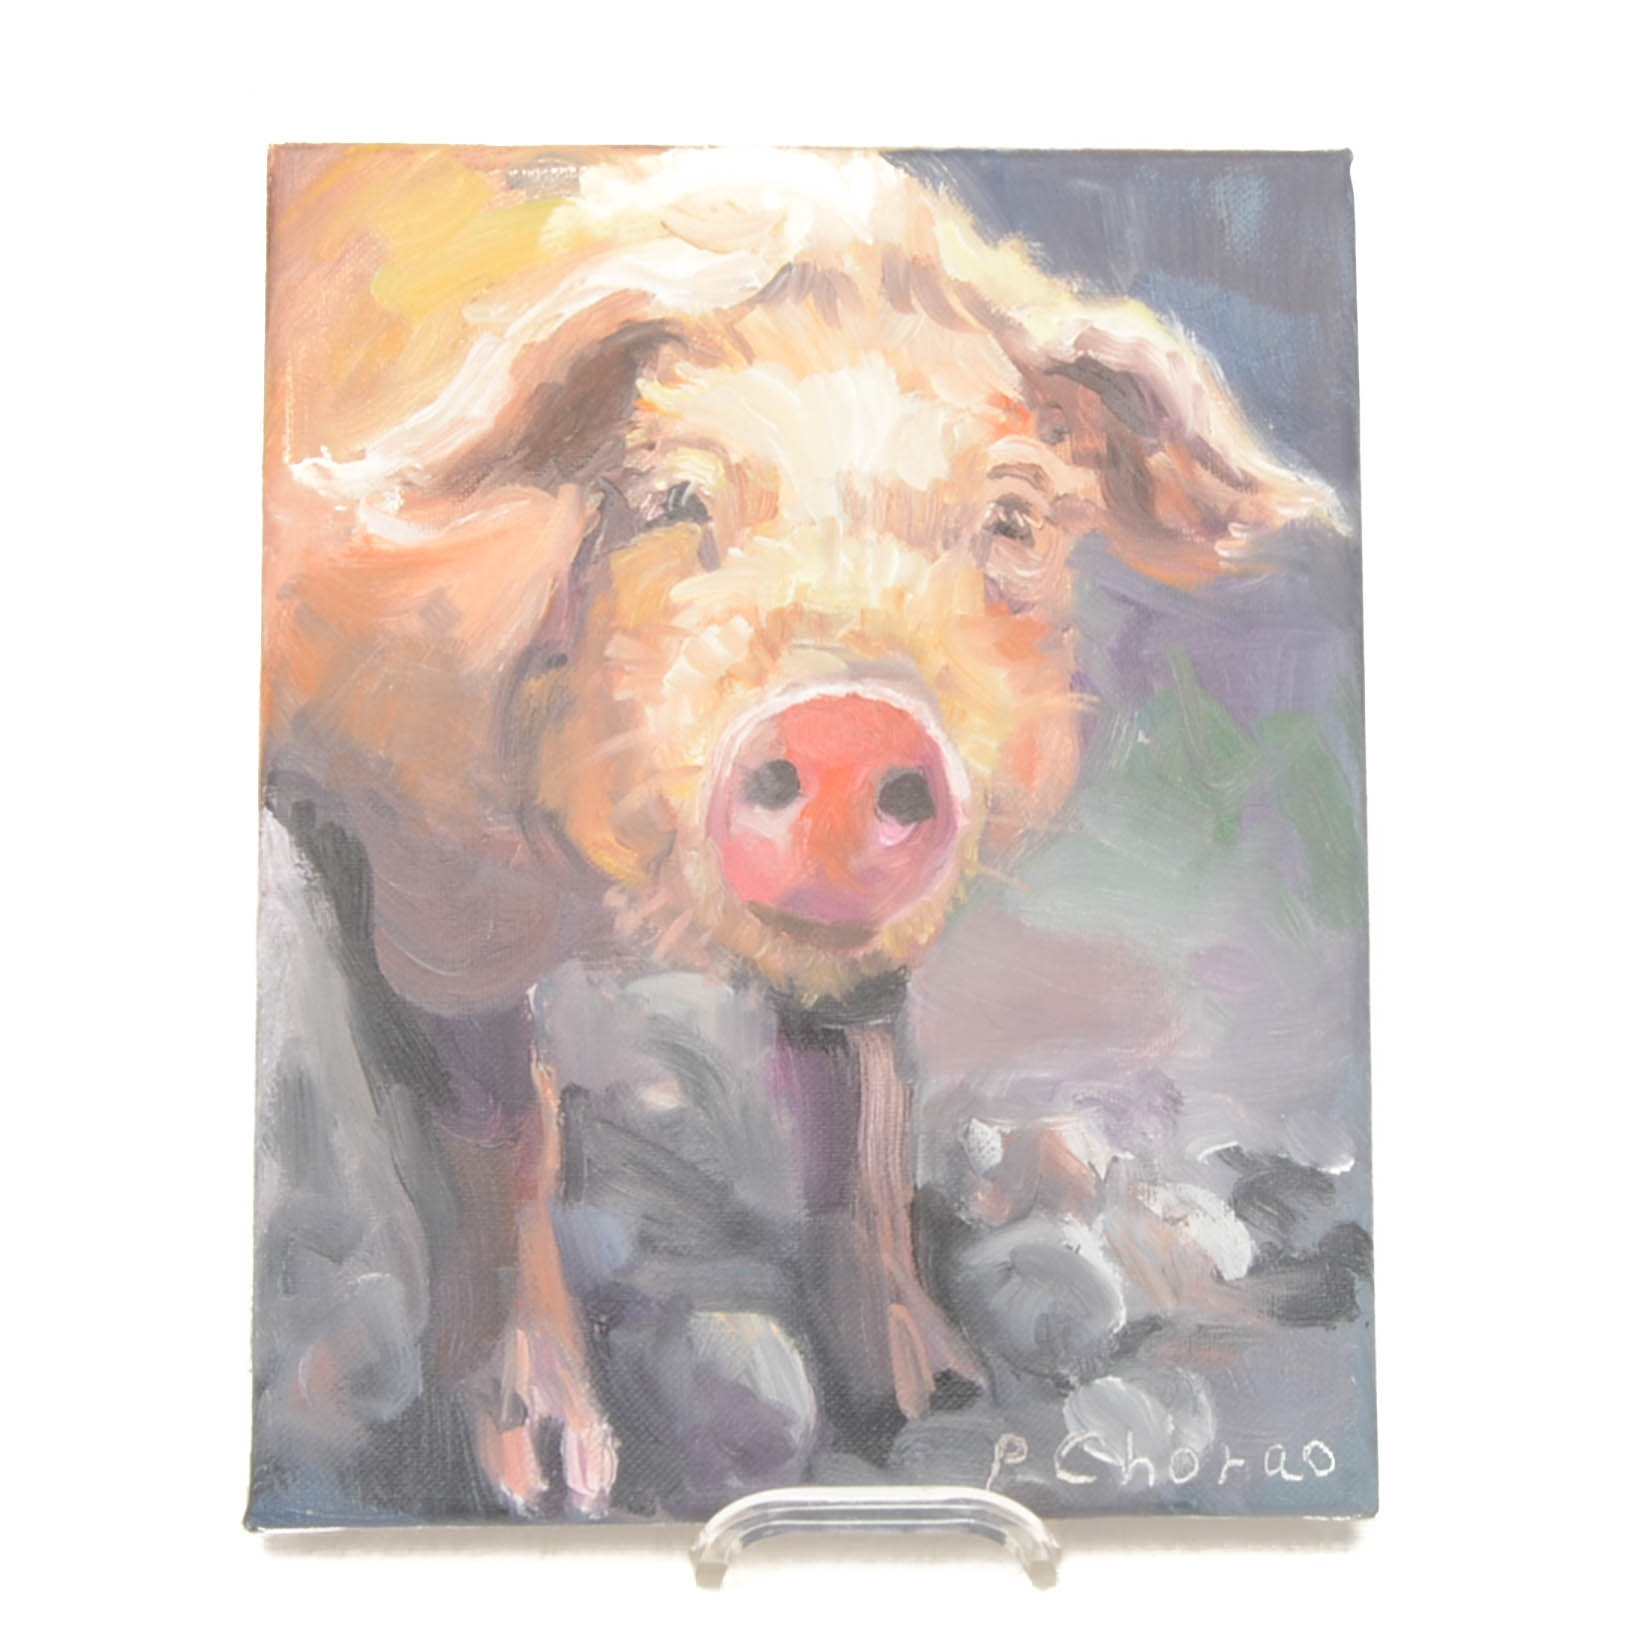 P. Chorao Original Oil Painting on Canvas of a Pig